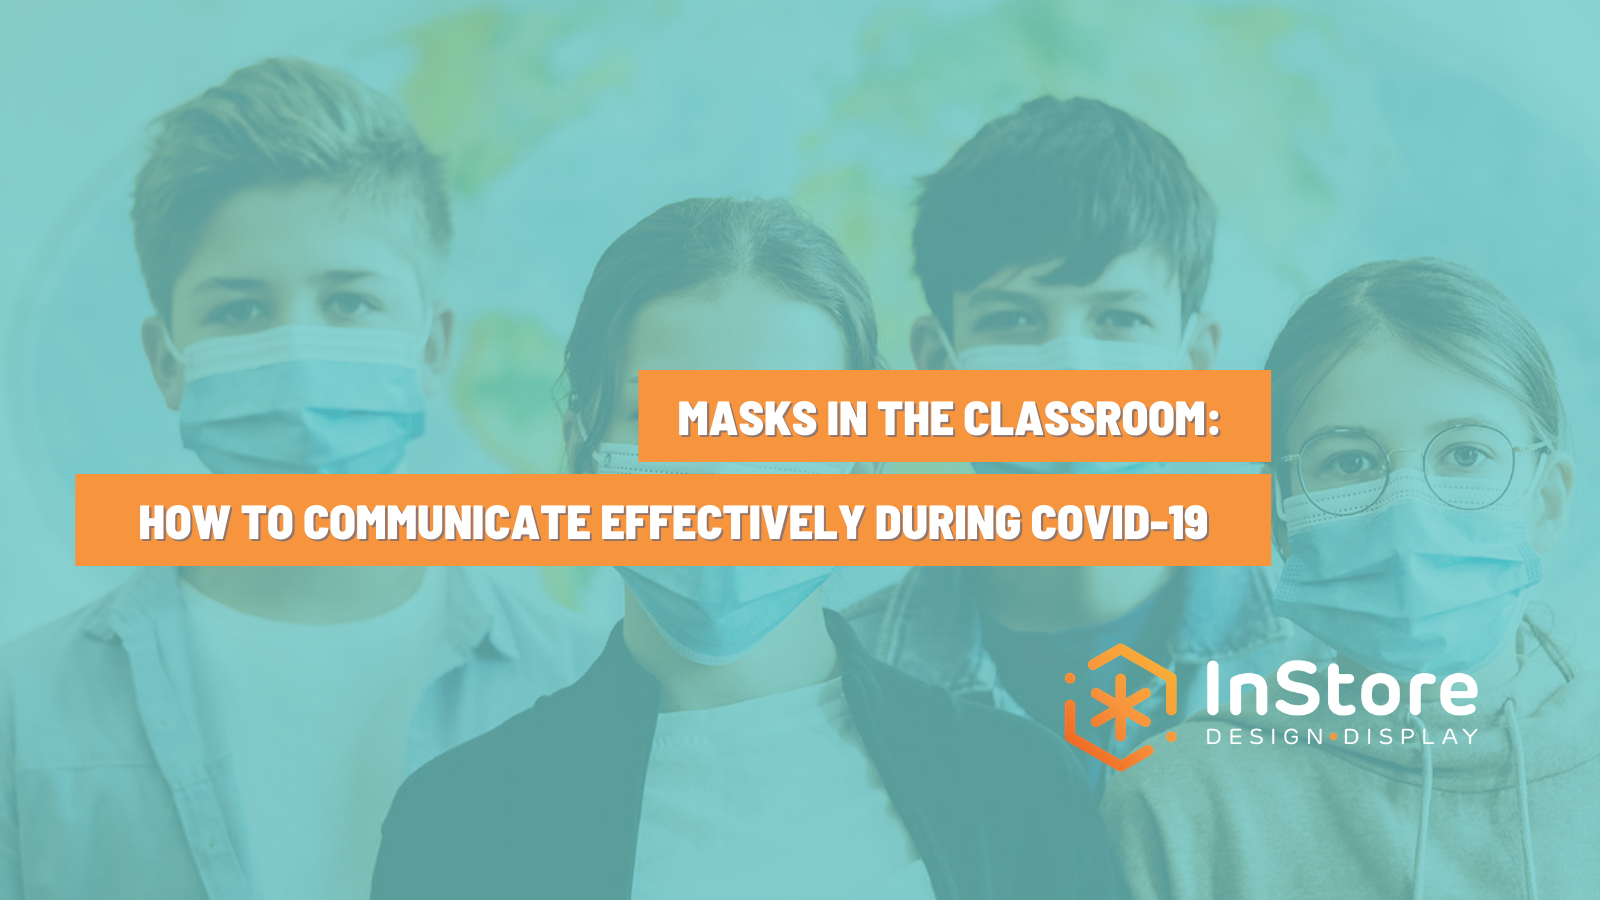 Masks in the Classroom: How to Communicate Effectively During COVID-19